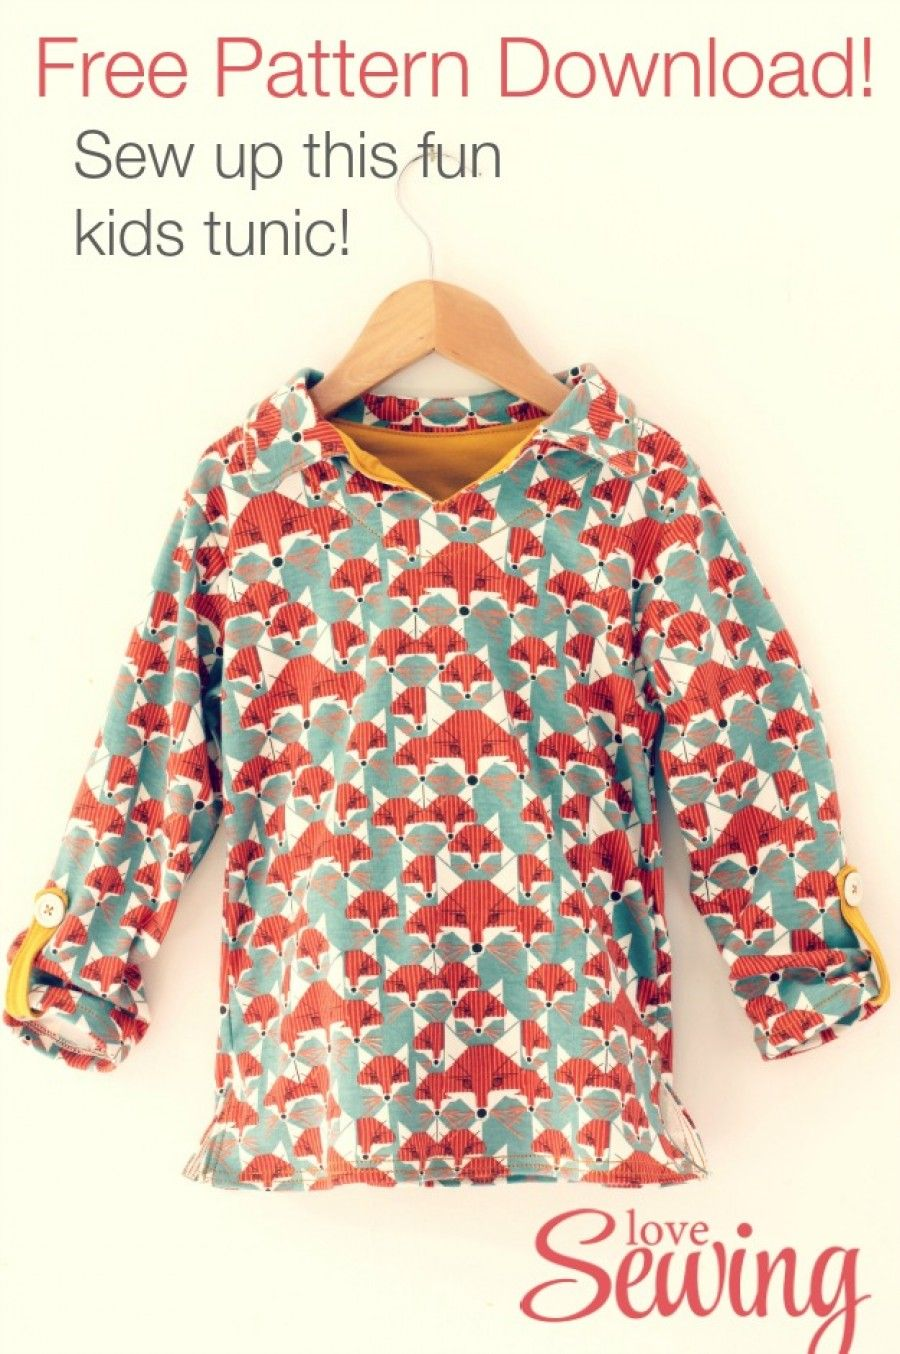 Kids Tunic - Free Pattern to Download! | DIY sewing for little ...